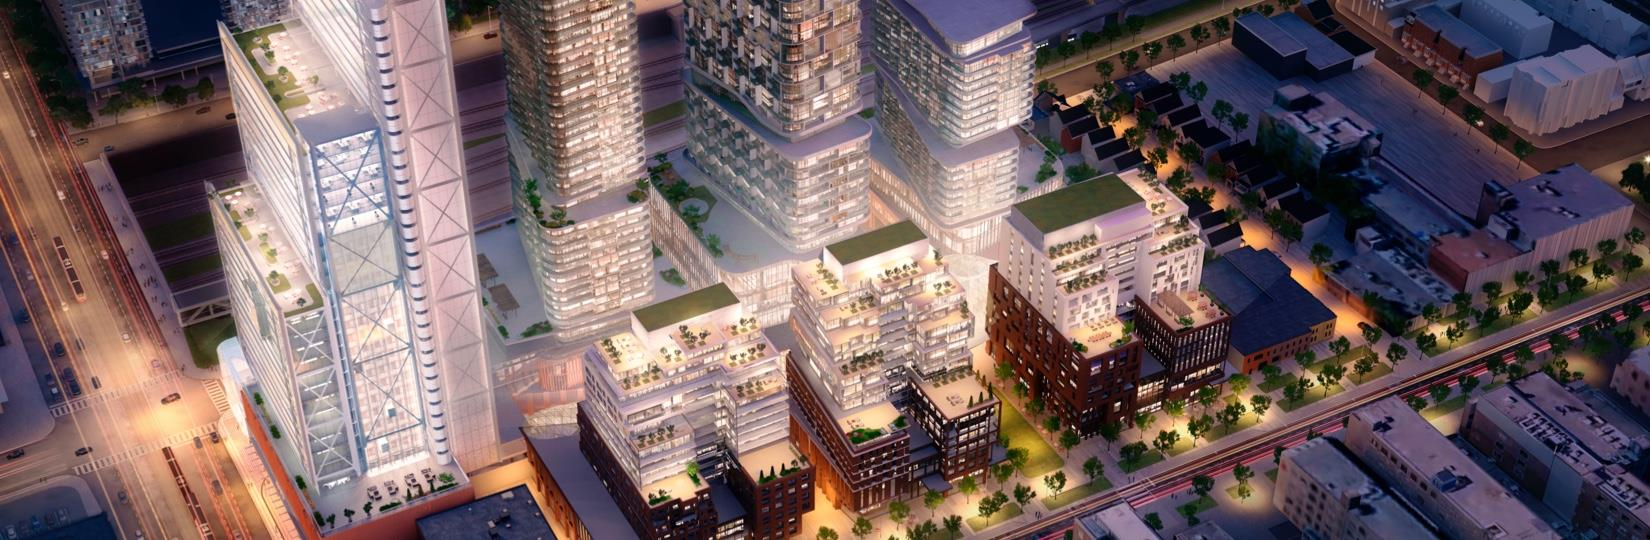 The Well Condos Aerial View Toronto, Canada